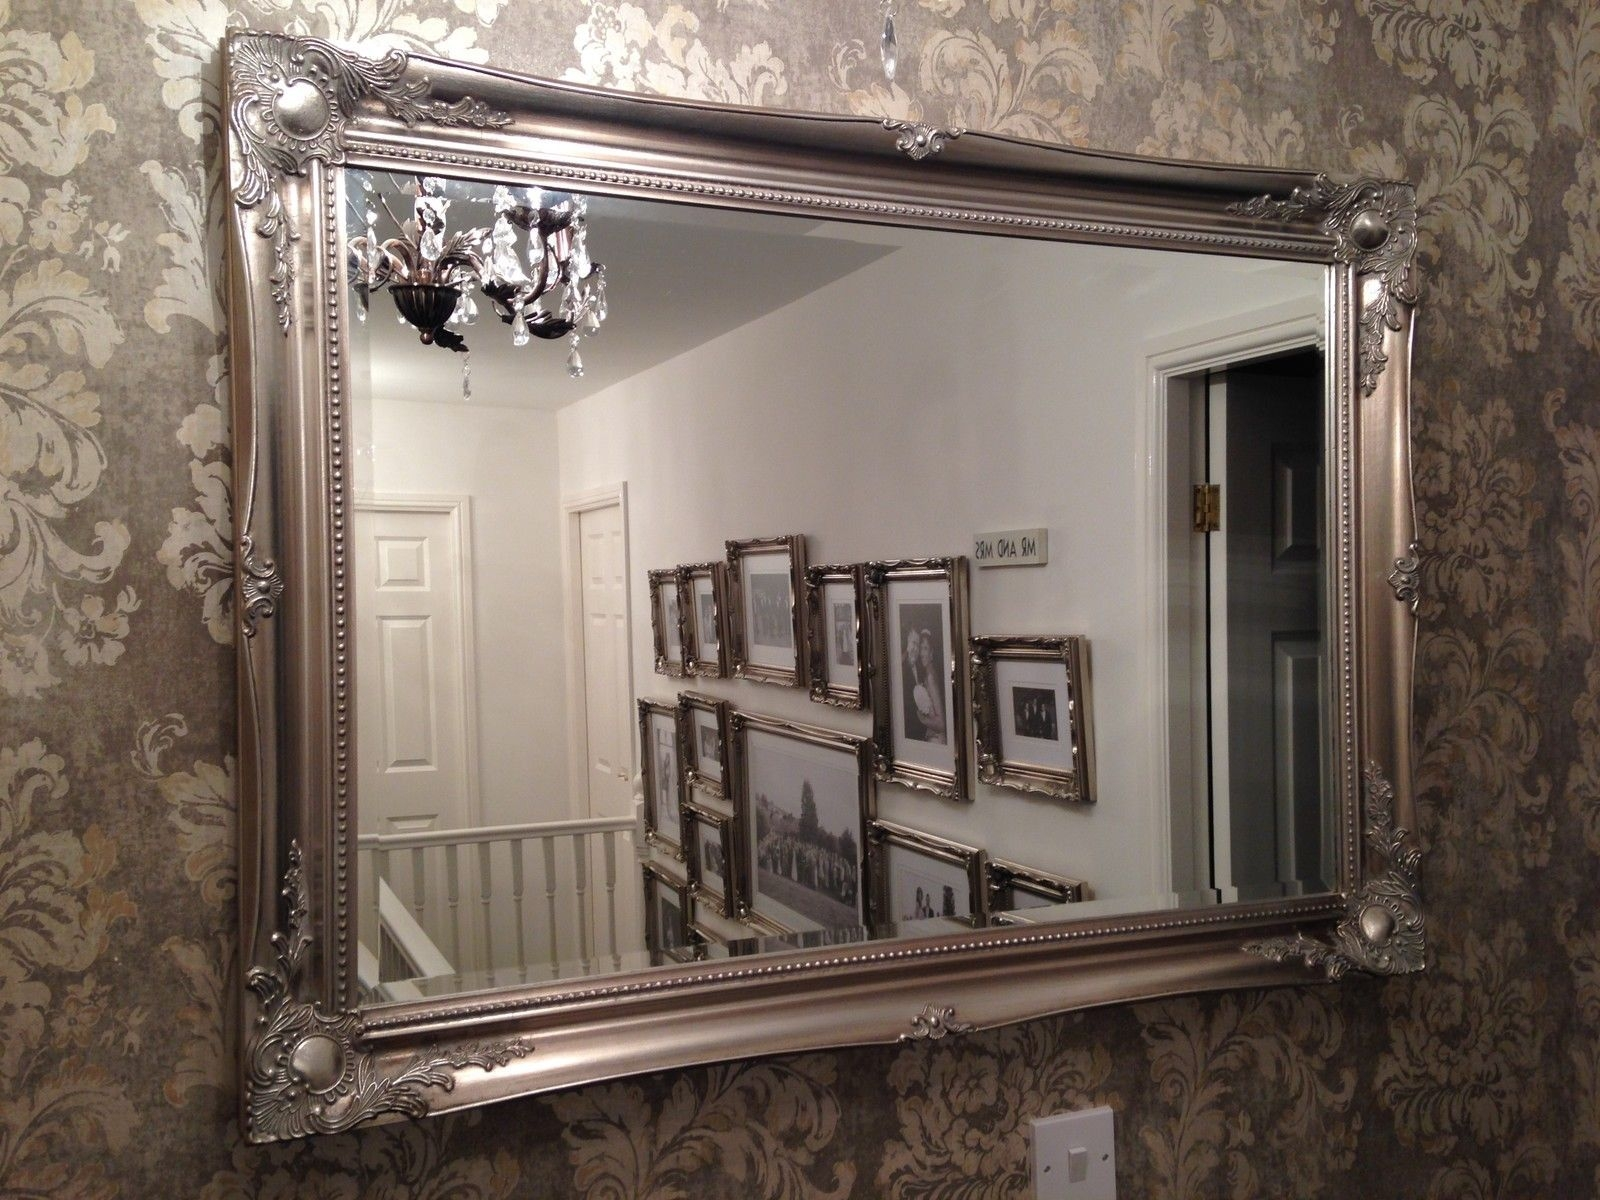 Stunning Decoration Large Silver Wall Mirror Vibrant Creative Wall Intended For Big Ornate Mirrors (Image 13 of 15)